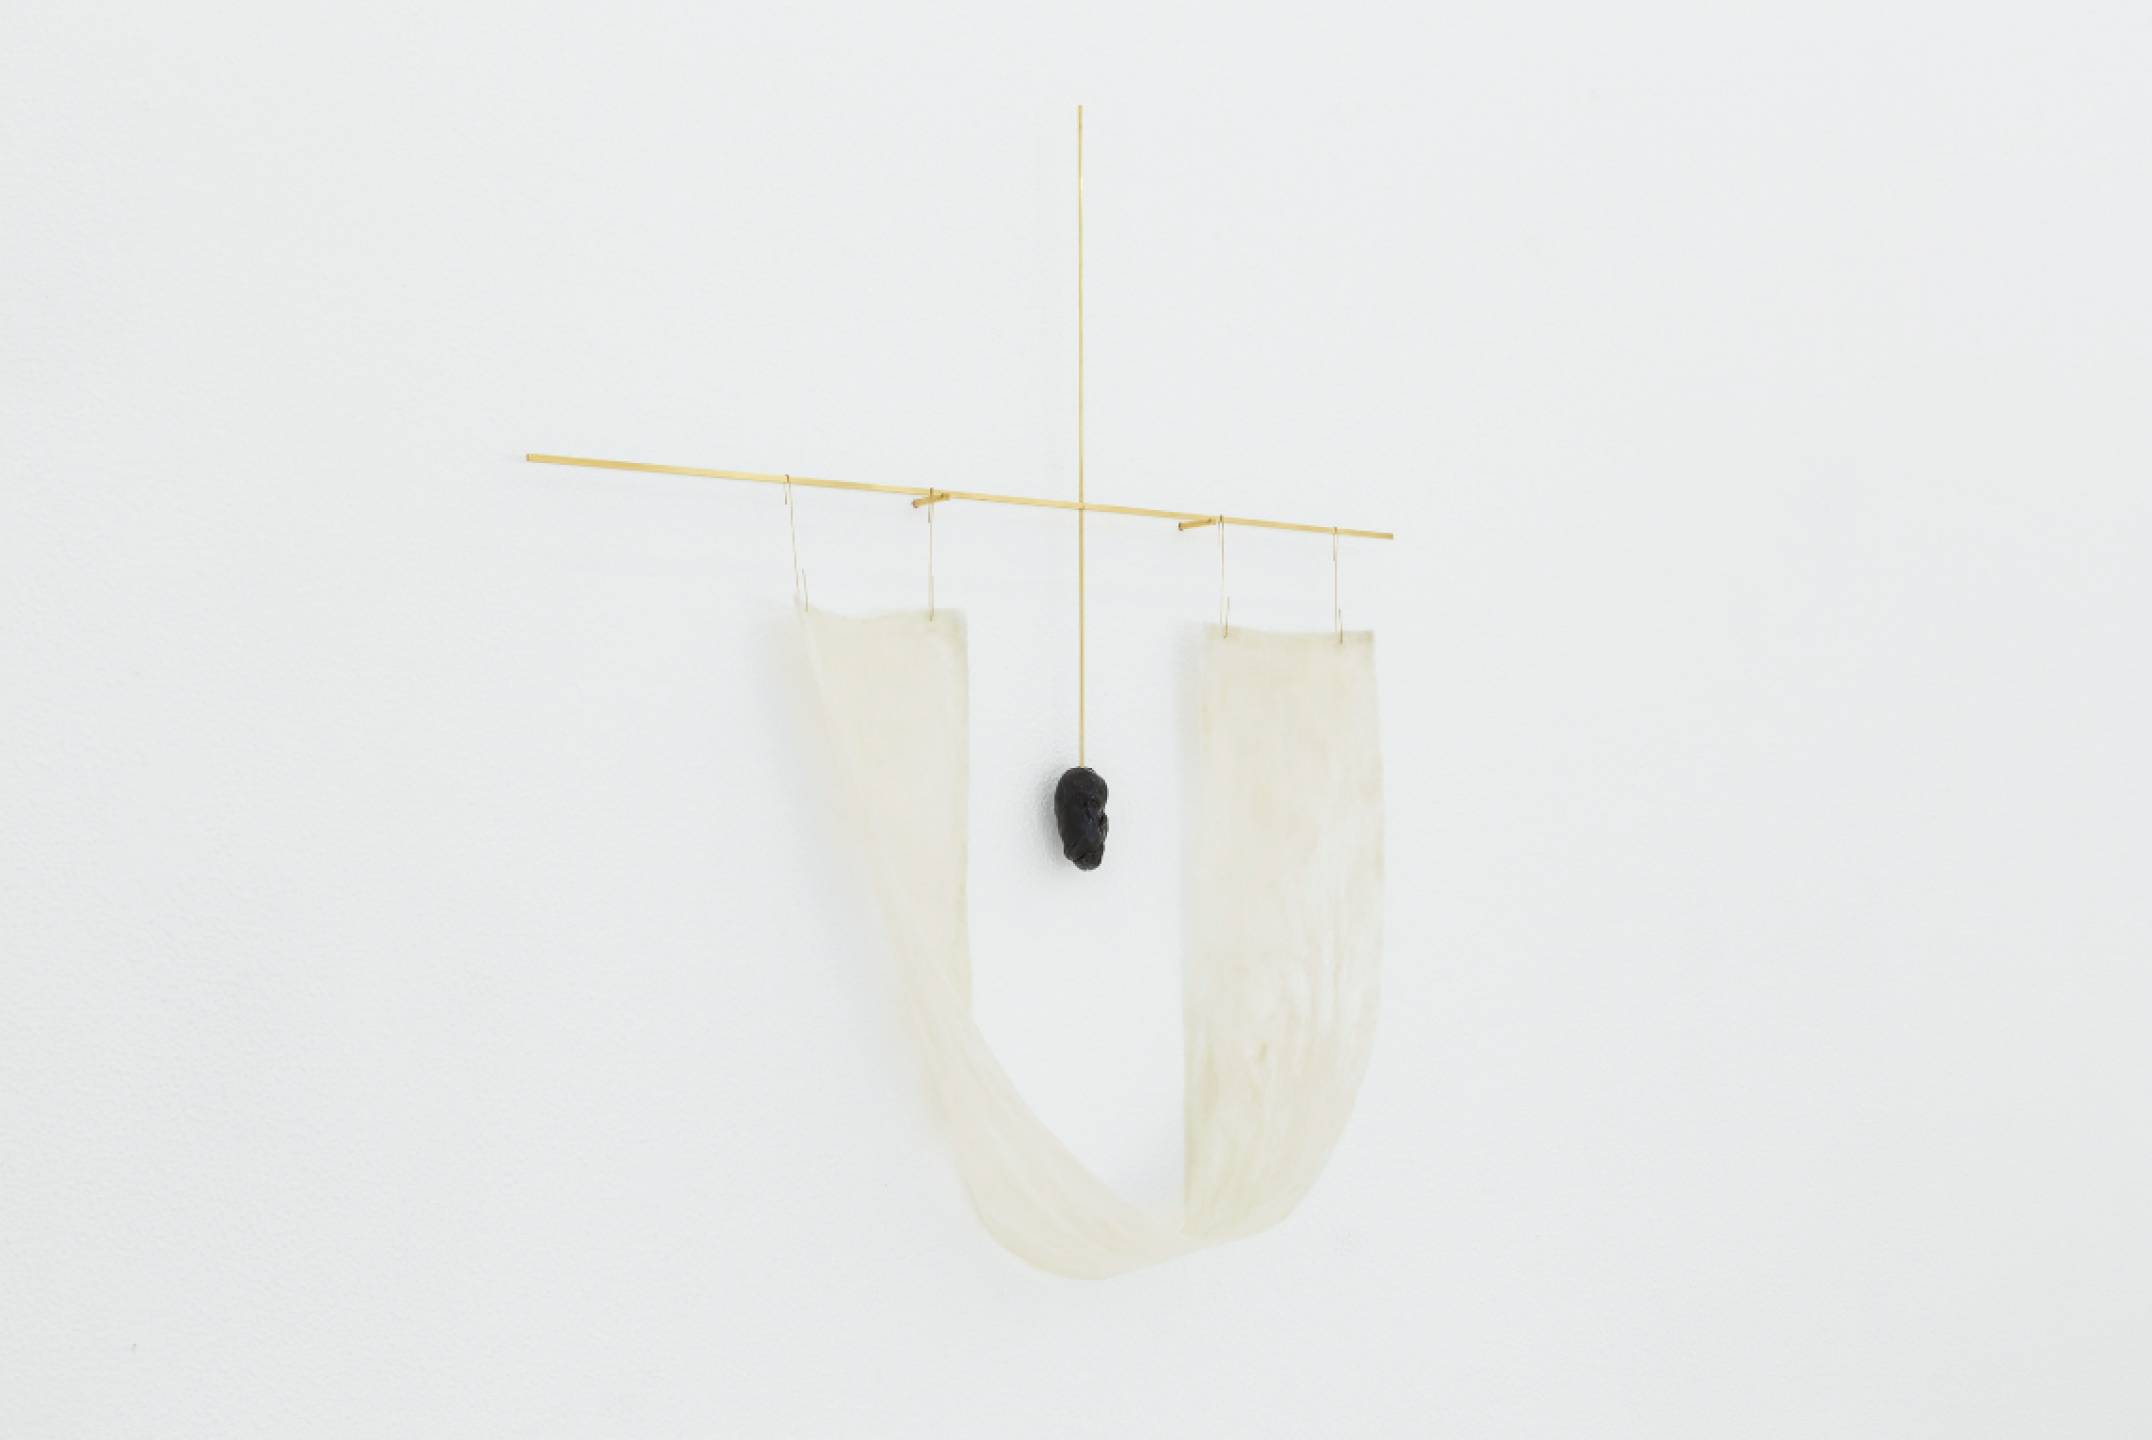 Paloma Bosquê,<em>&nbsp;The Hollow and The Seam</em>, Pavilhão Branco – Museu da Cidade, Lisbon, 2017 - Mendes Wood DM